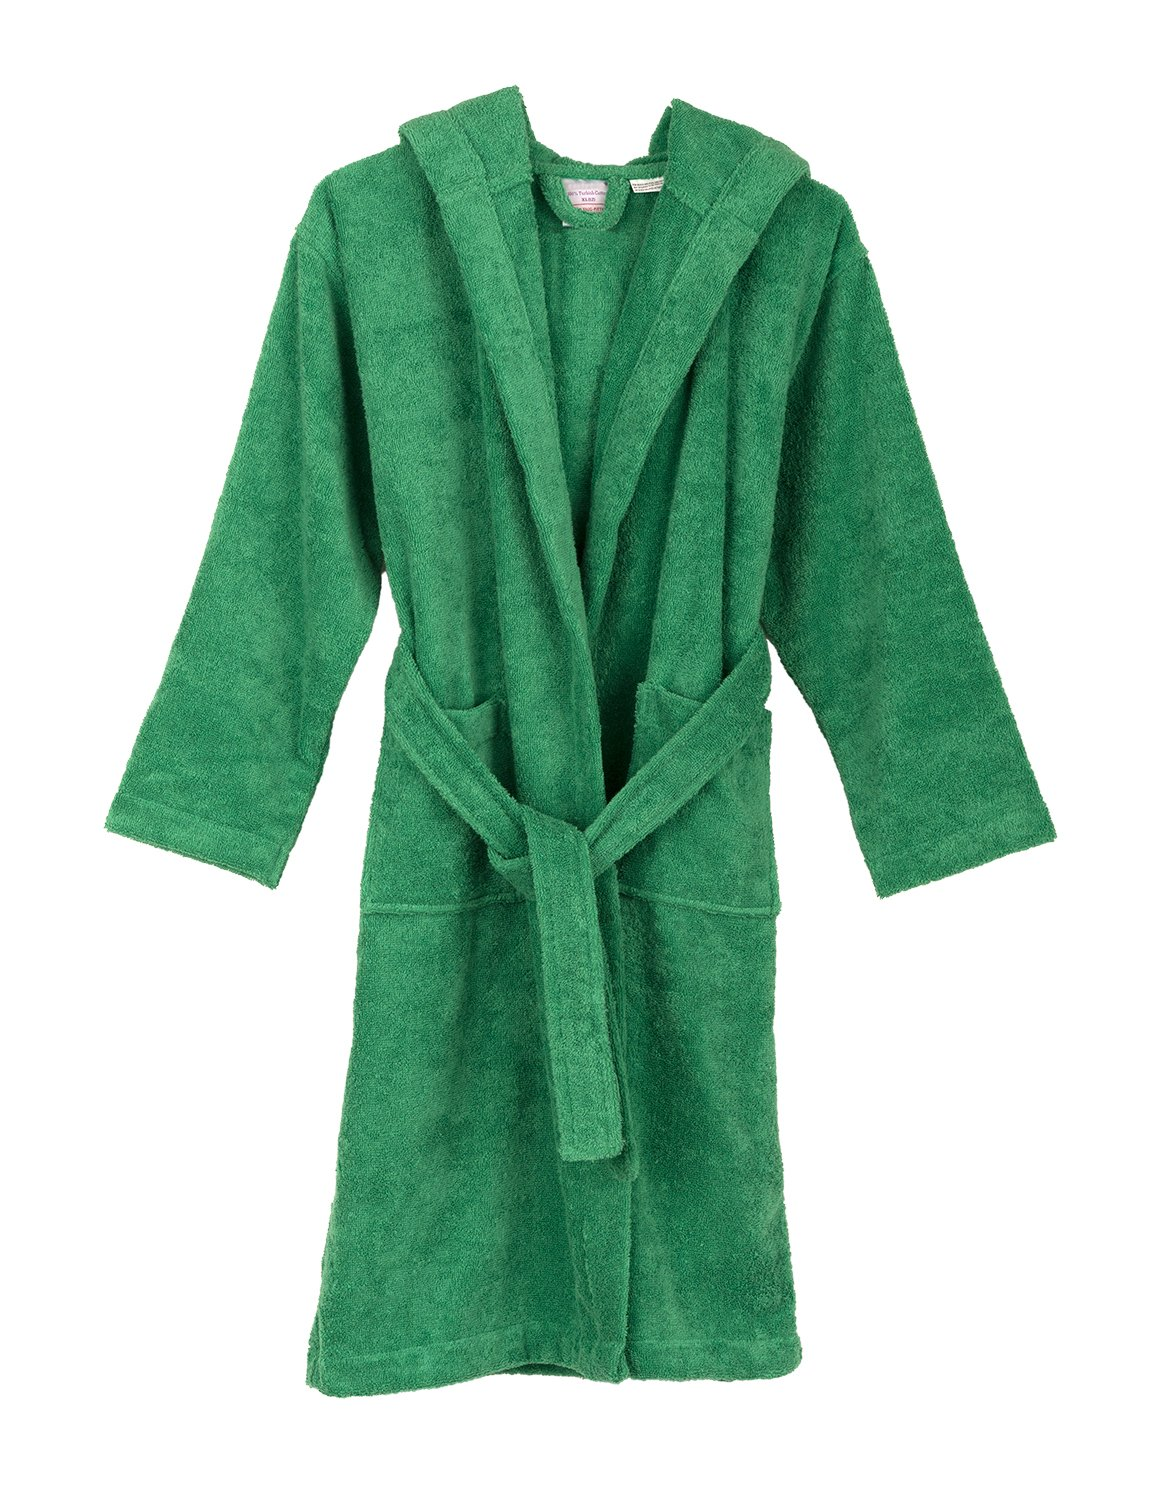 TowelSelections Little Girls Robe, Kids Hooded Cotton Terry Bathrobe Cover-up Size 6 Jelly Bean